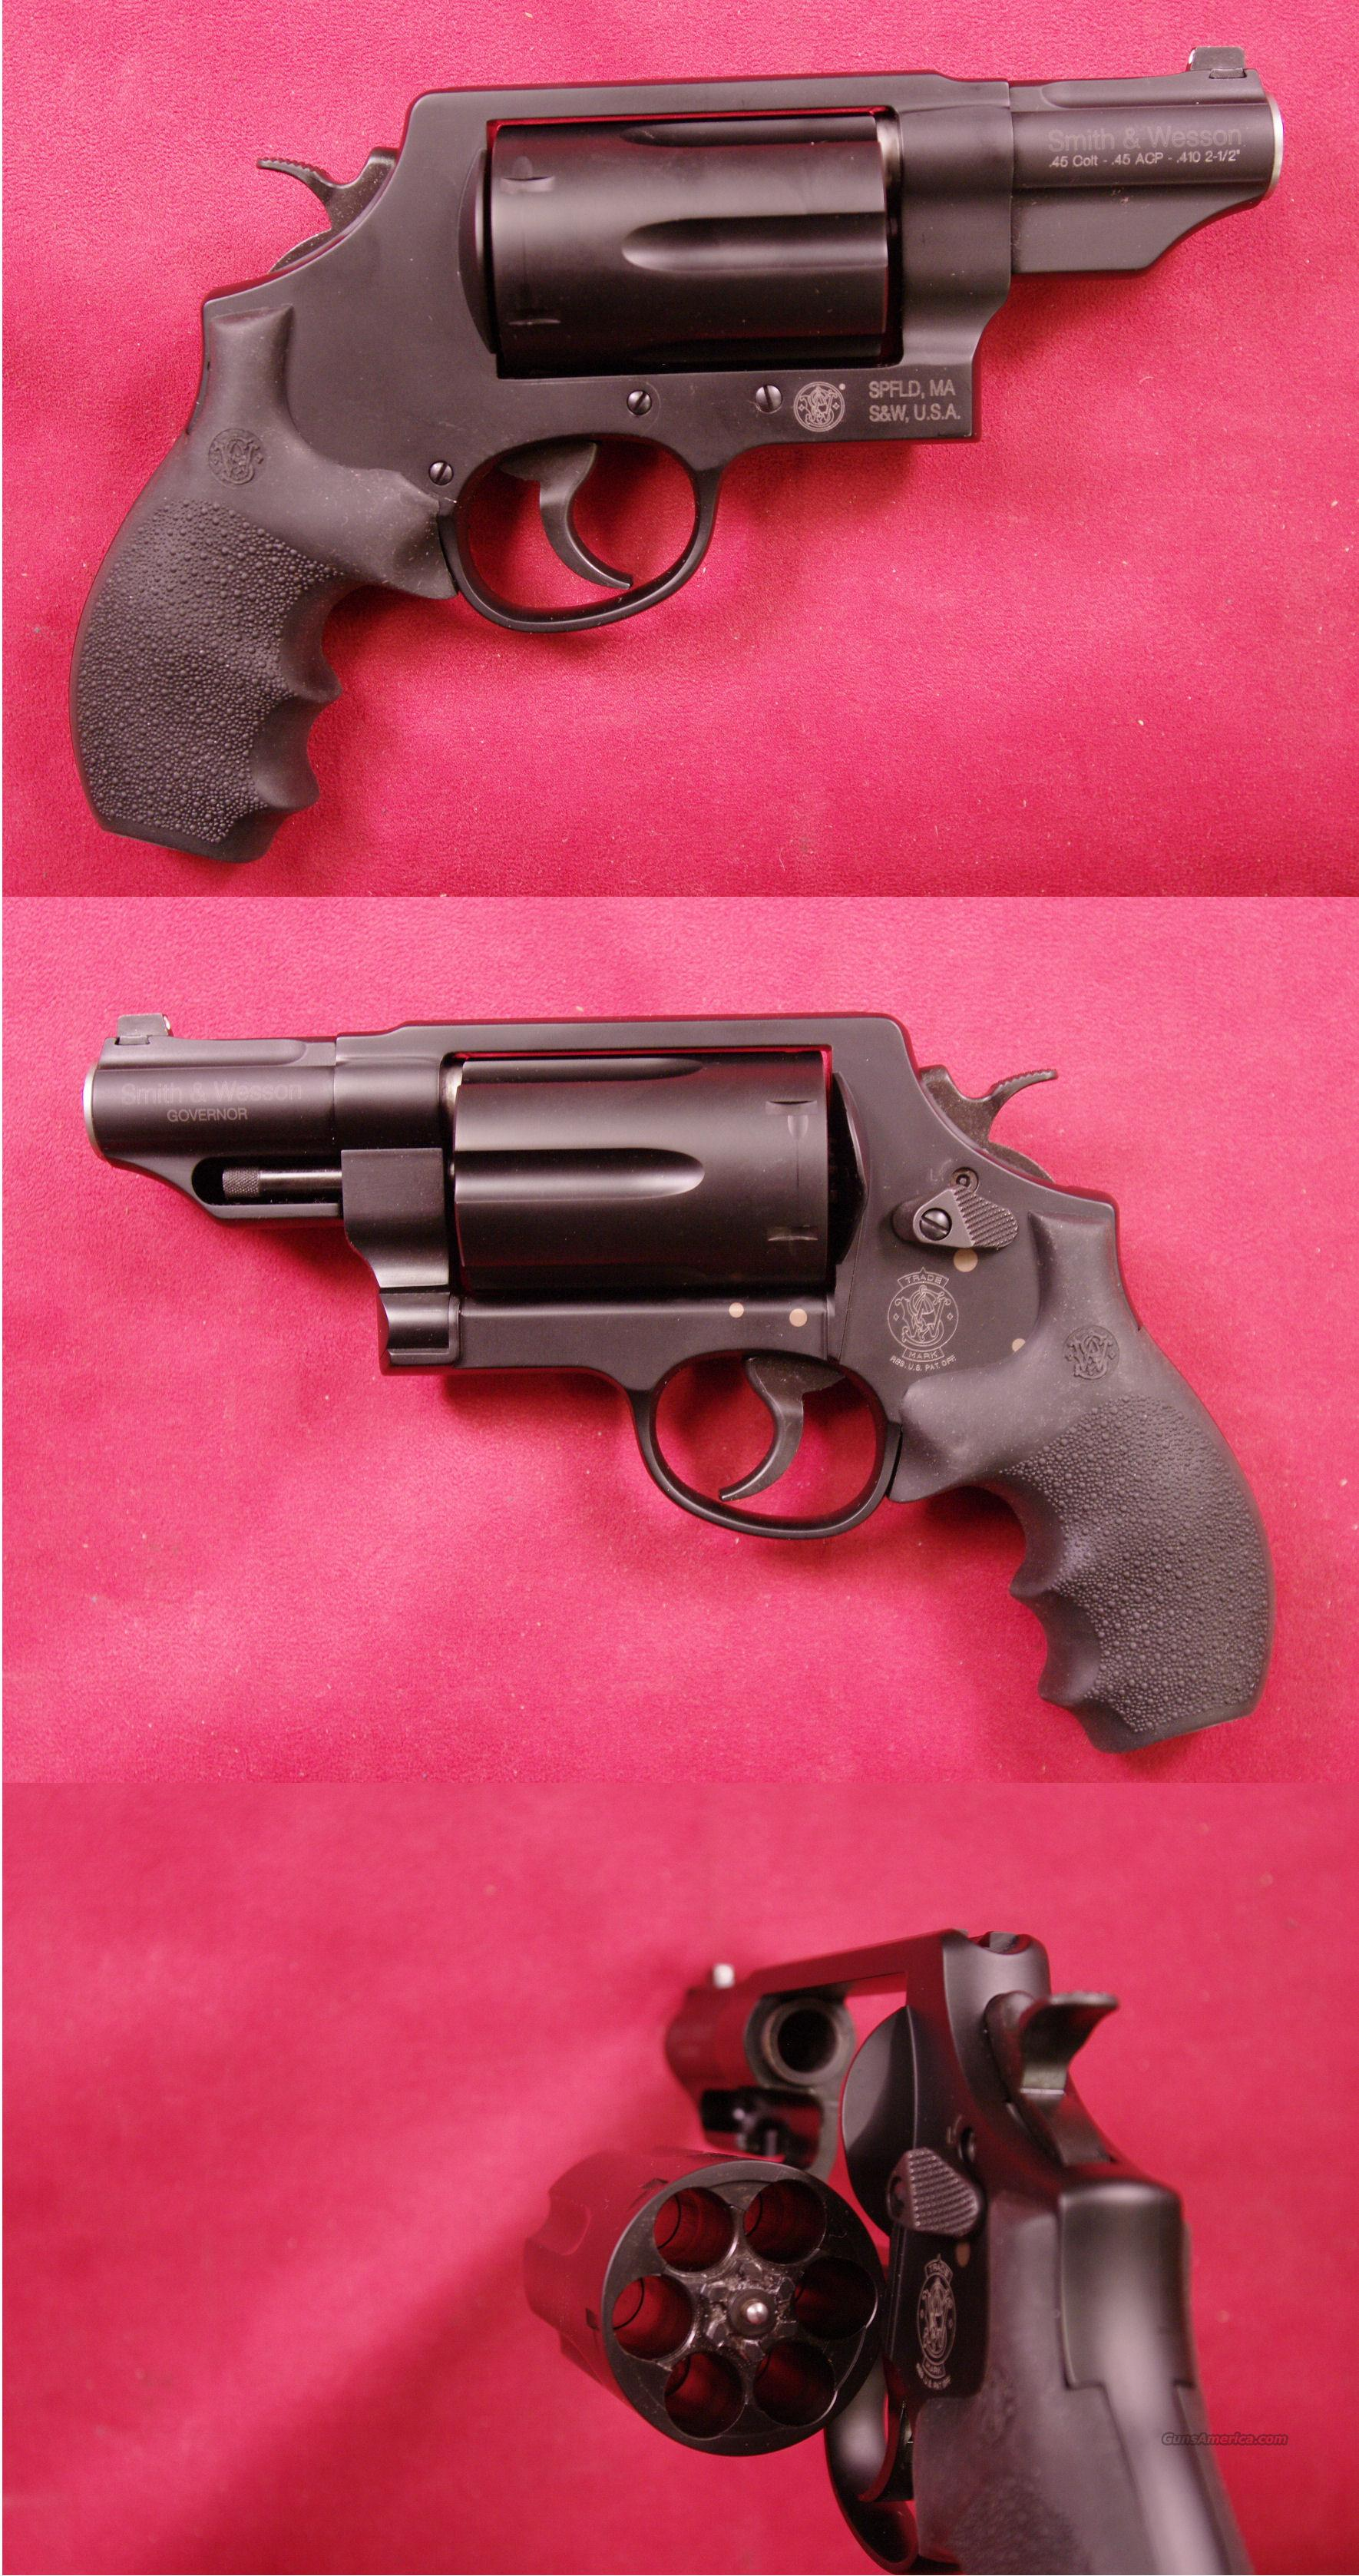 Smith & Wesson Governor .45ACP/45COLT/.410  Guns > Pistols > Smith & Wesson Revolvers > Full Frame Revolver